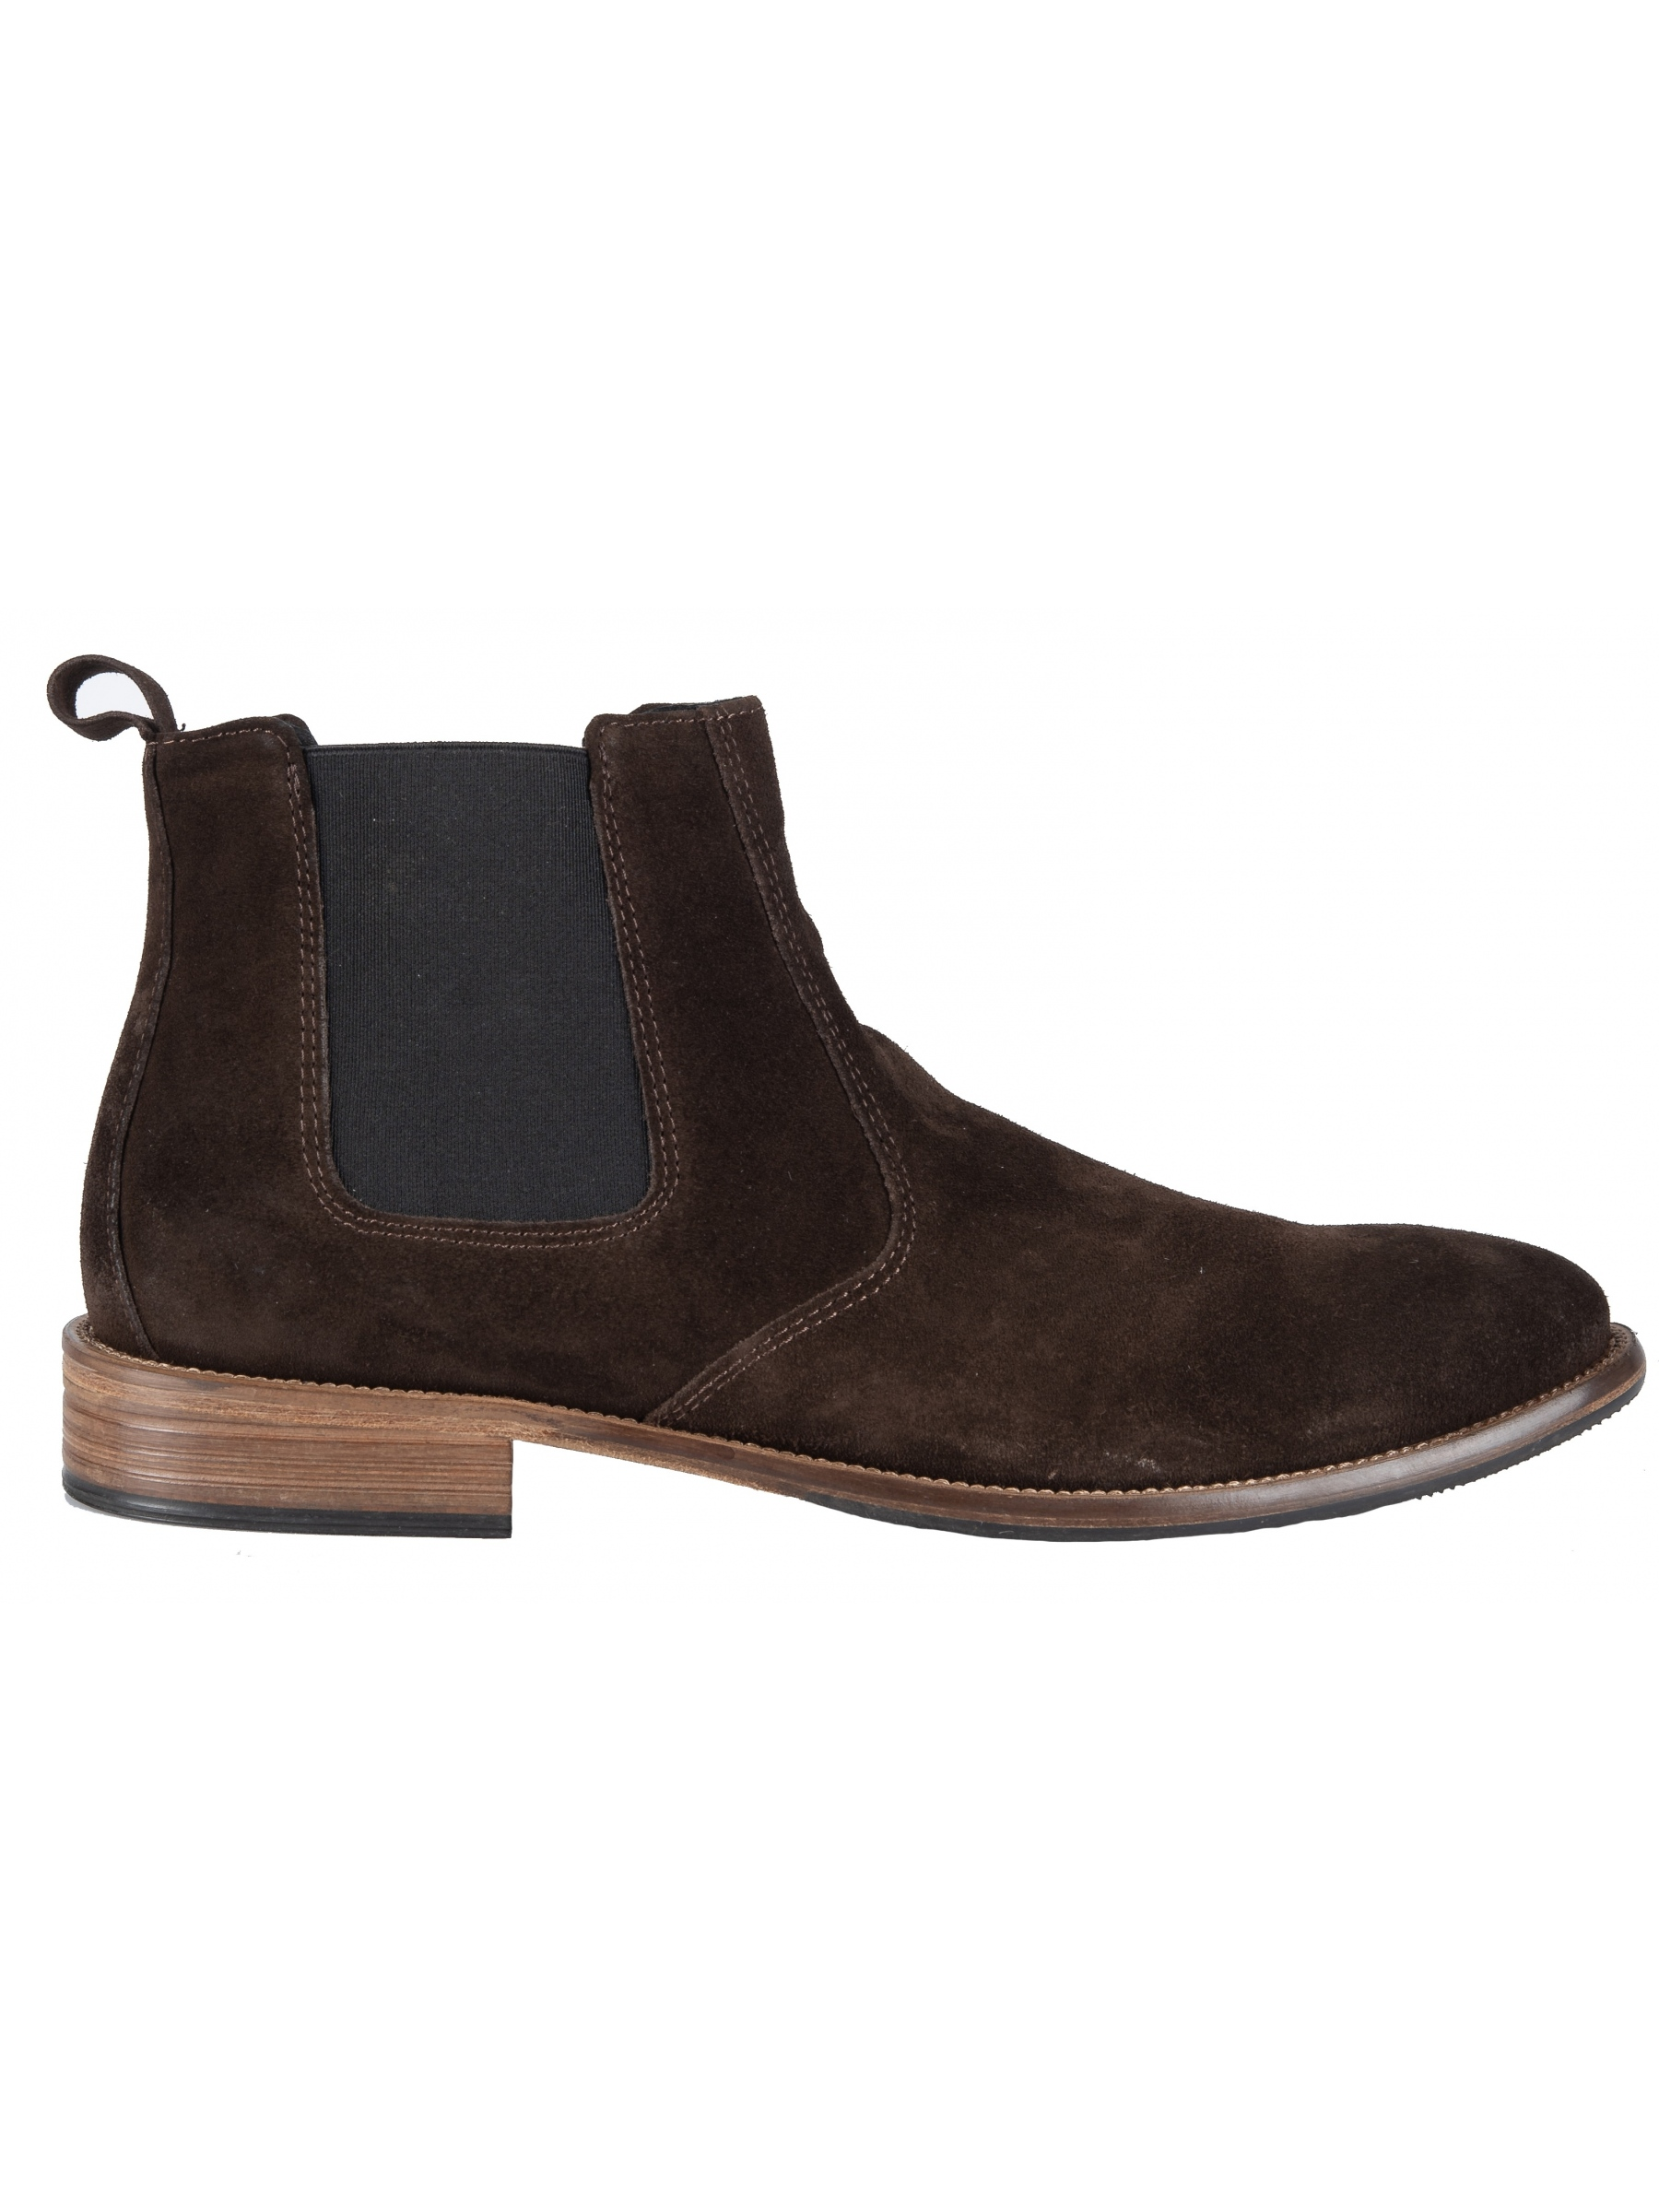 YES LONDON chelsea boot ST40-CAMOSCIO brown